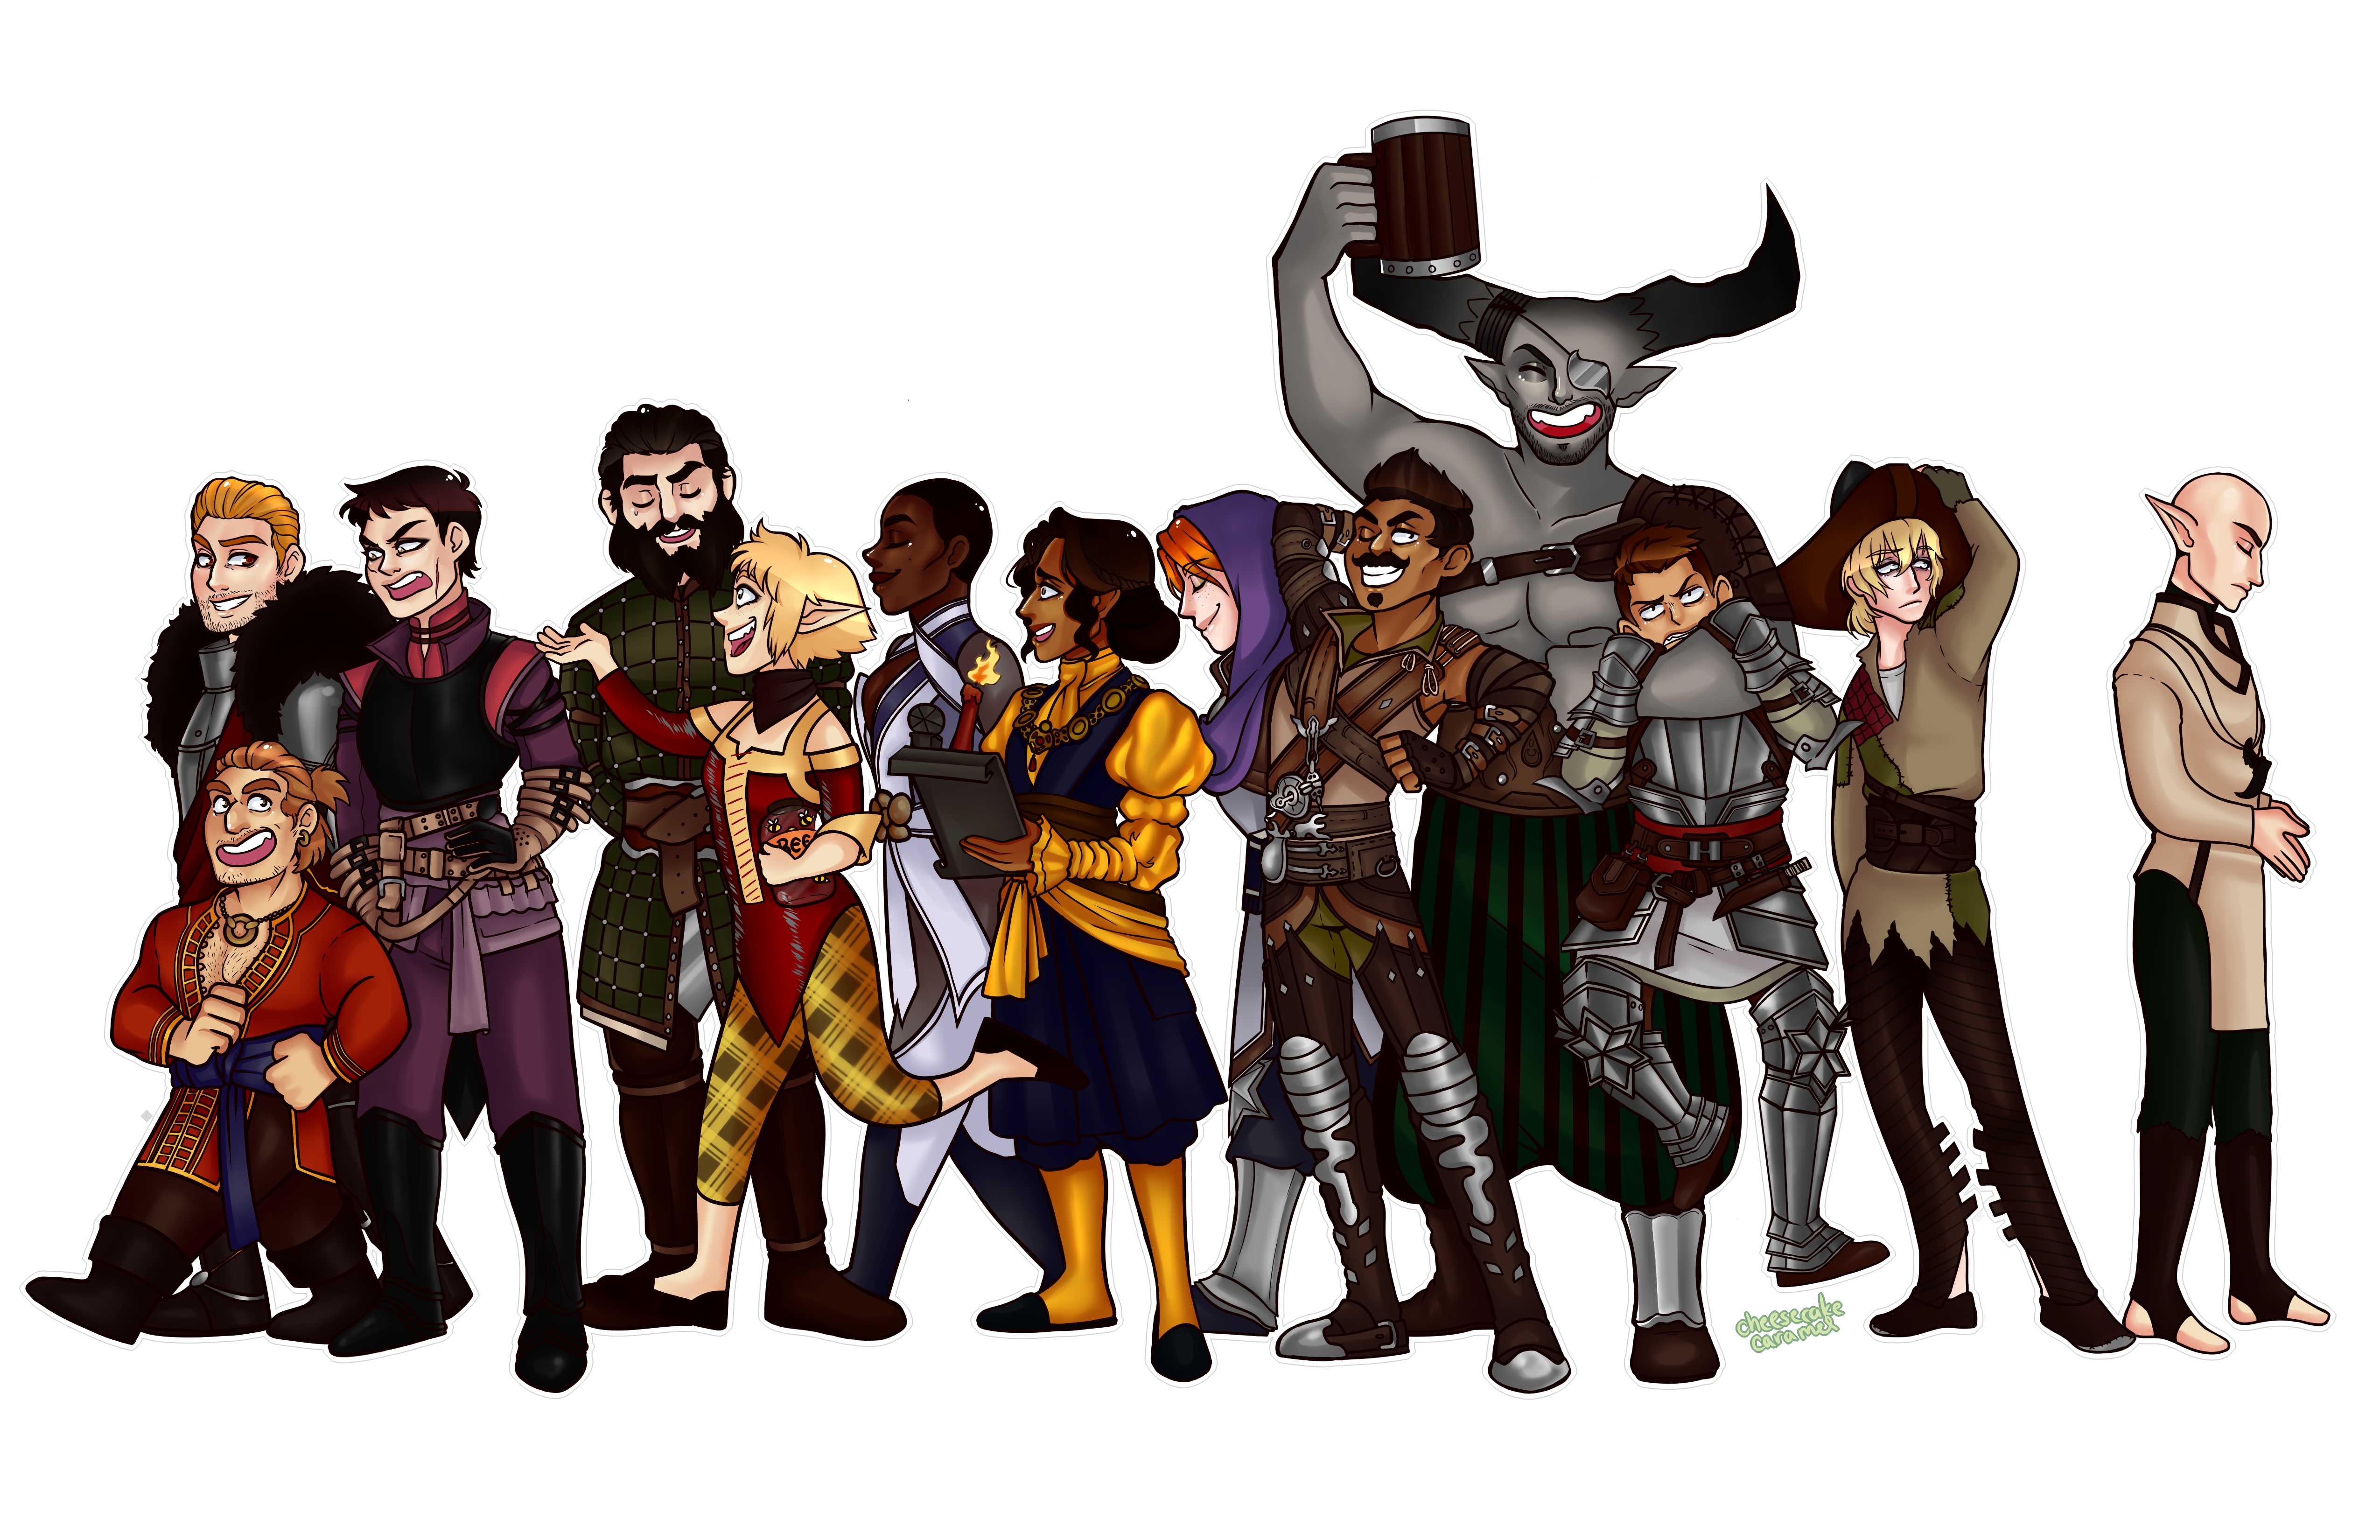 Dragon Age Inquisition Fanart By Cheesecakecaramel Dragon Age Dragon Age Inquisition G Dragon Age